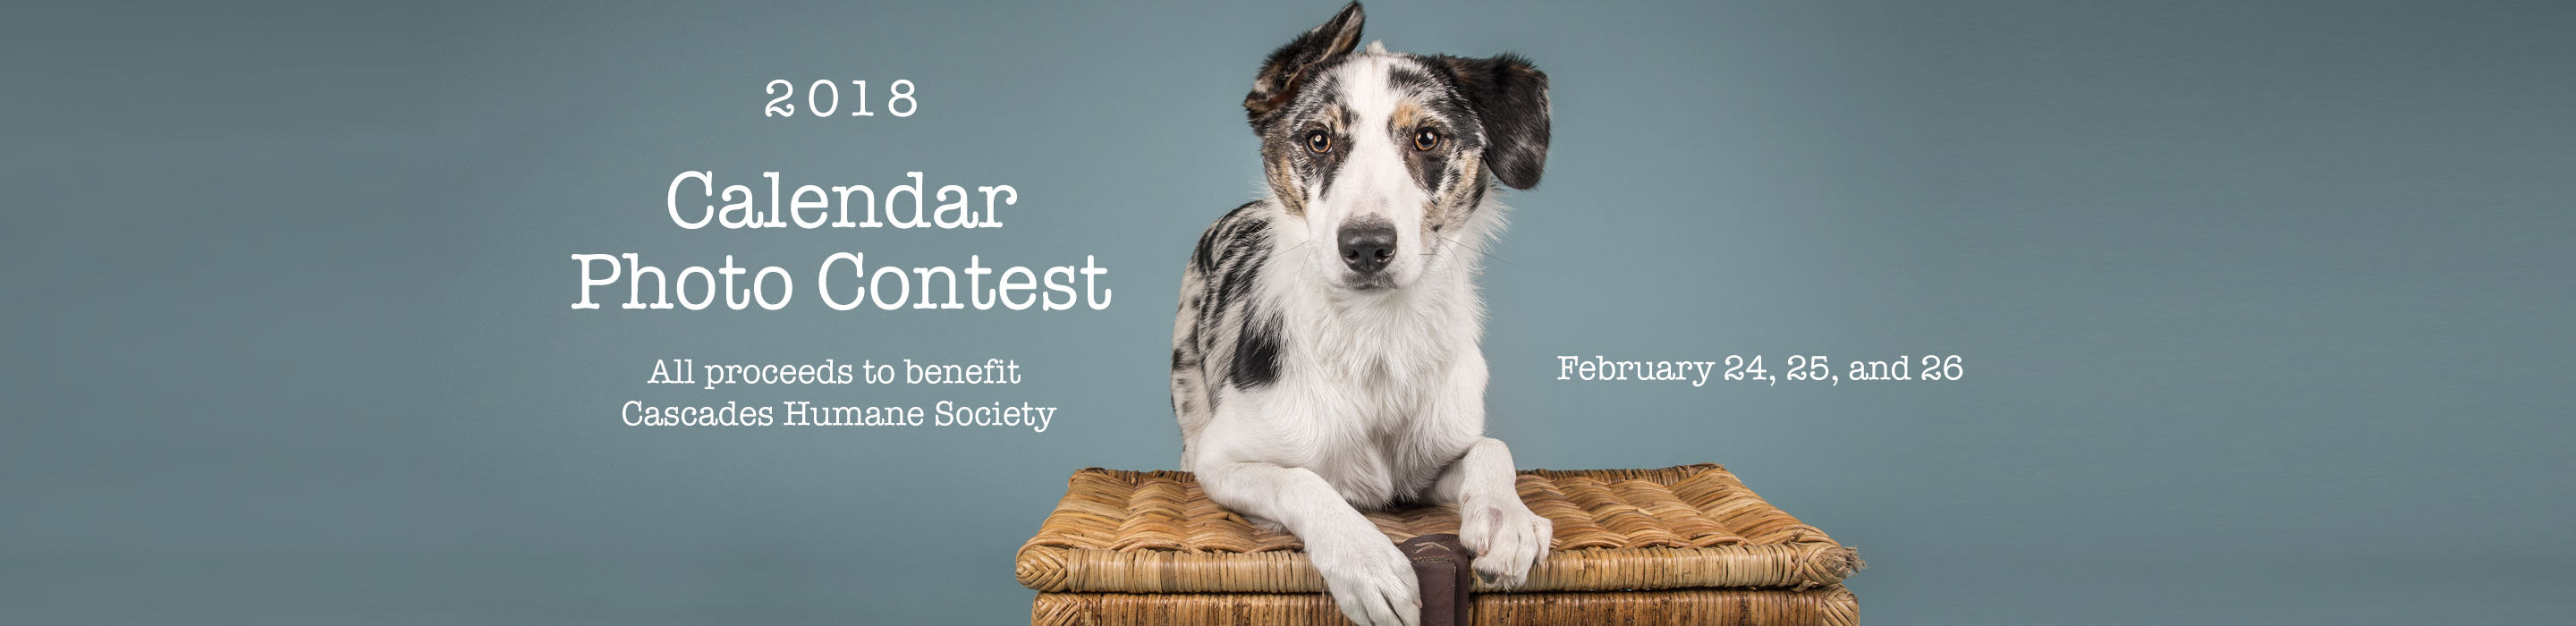 Calendar Photography Contest : Cascades humane society connecting animals in need with